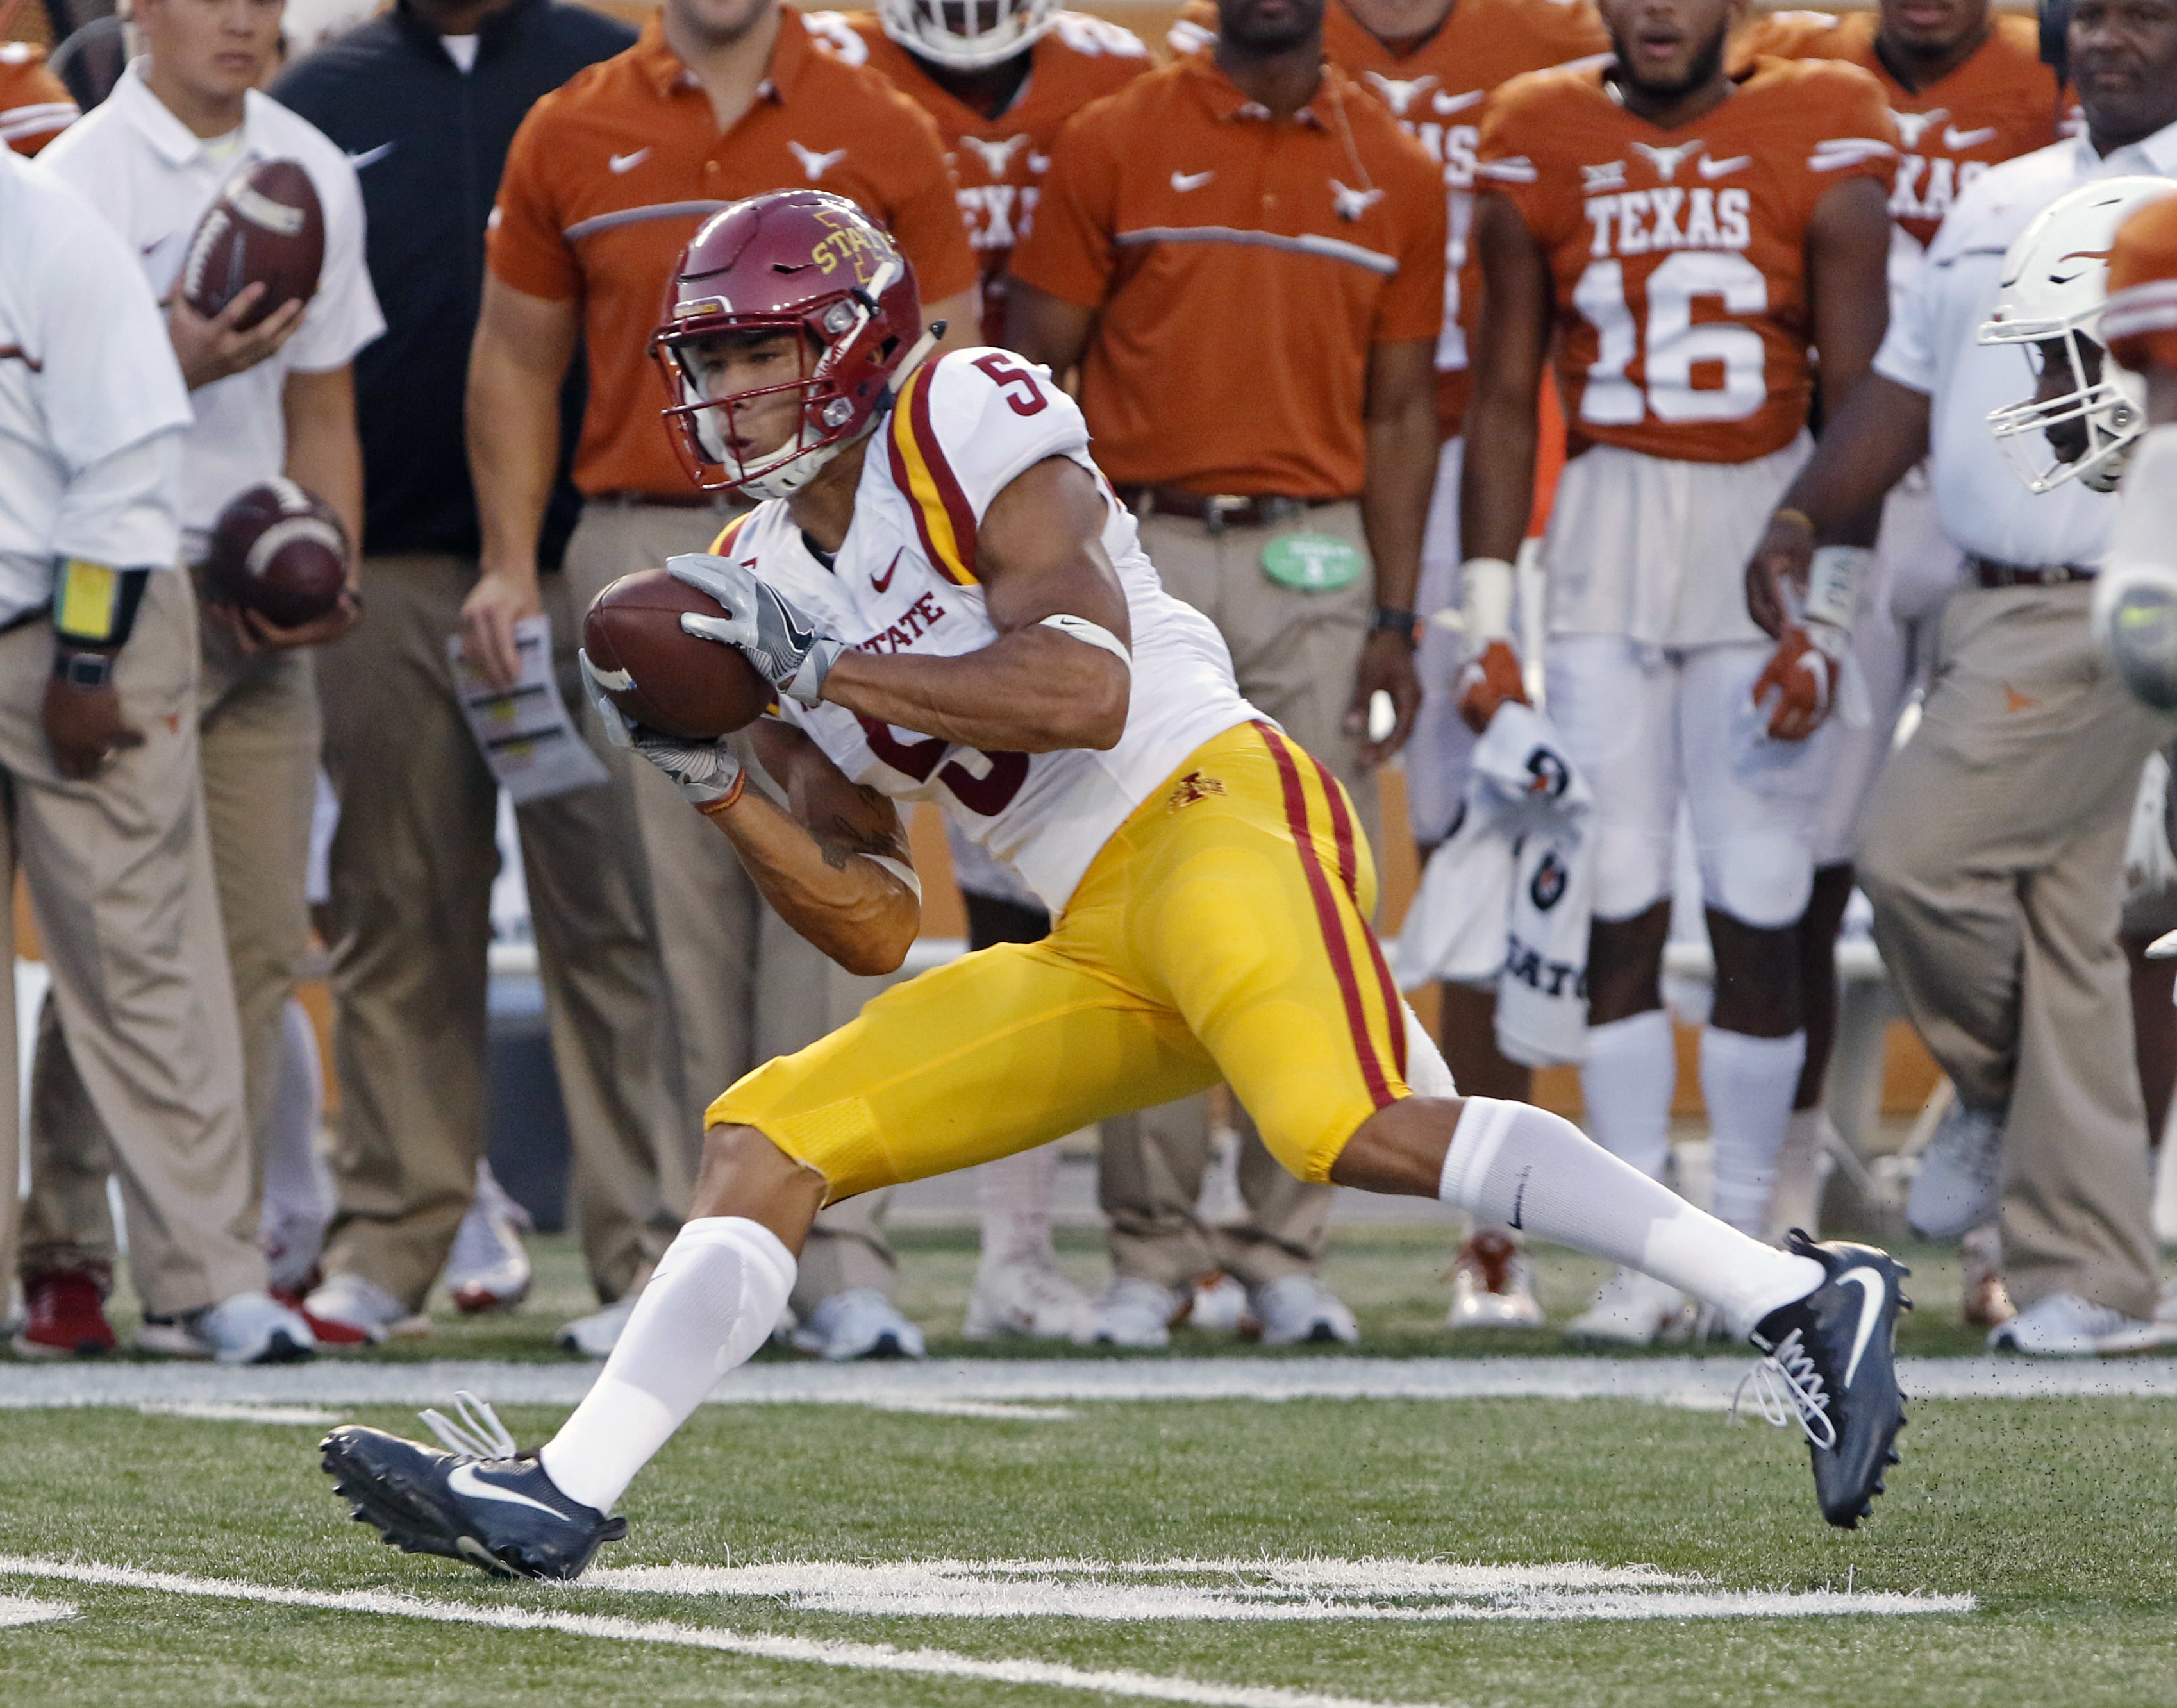 FILE - In this Oct. 15, 2016, file photo, Iowa State's Allen Lazard catches a pass during the team's NCAA college football game against Texa in Austin, Texas. Lazard has a reception in 30 consecutive games, a school record. (AP Photo/Michael Thomas, File)